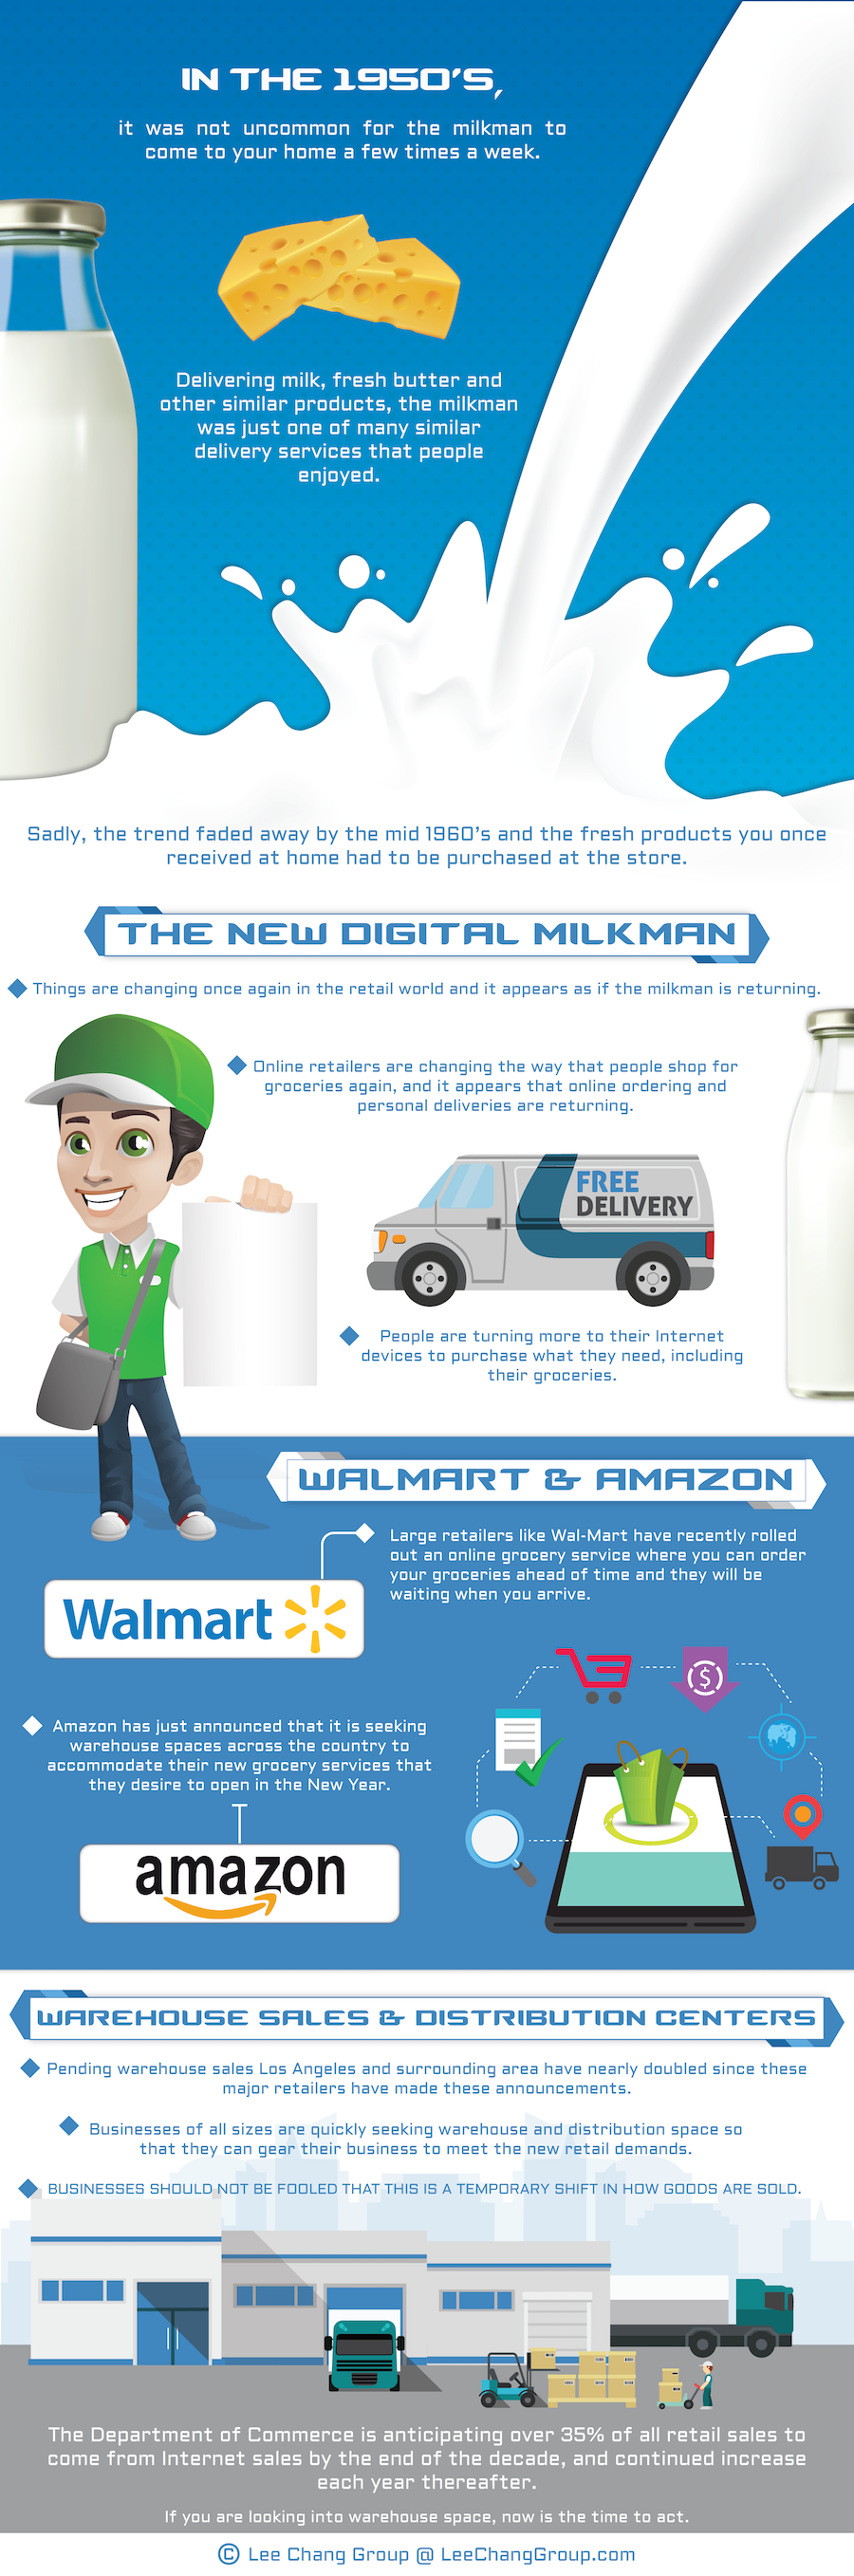 digital milkman infographic warehouse brokers california industrial real estate sales